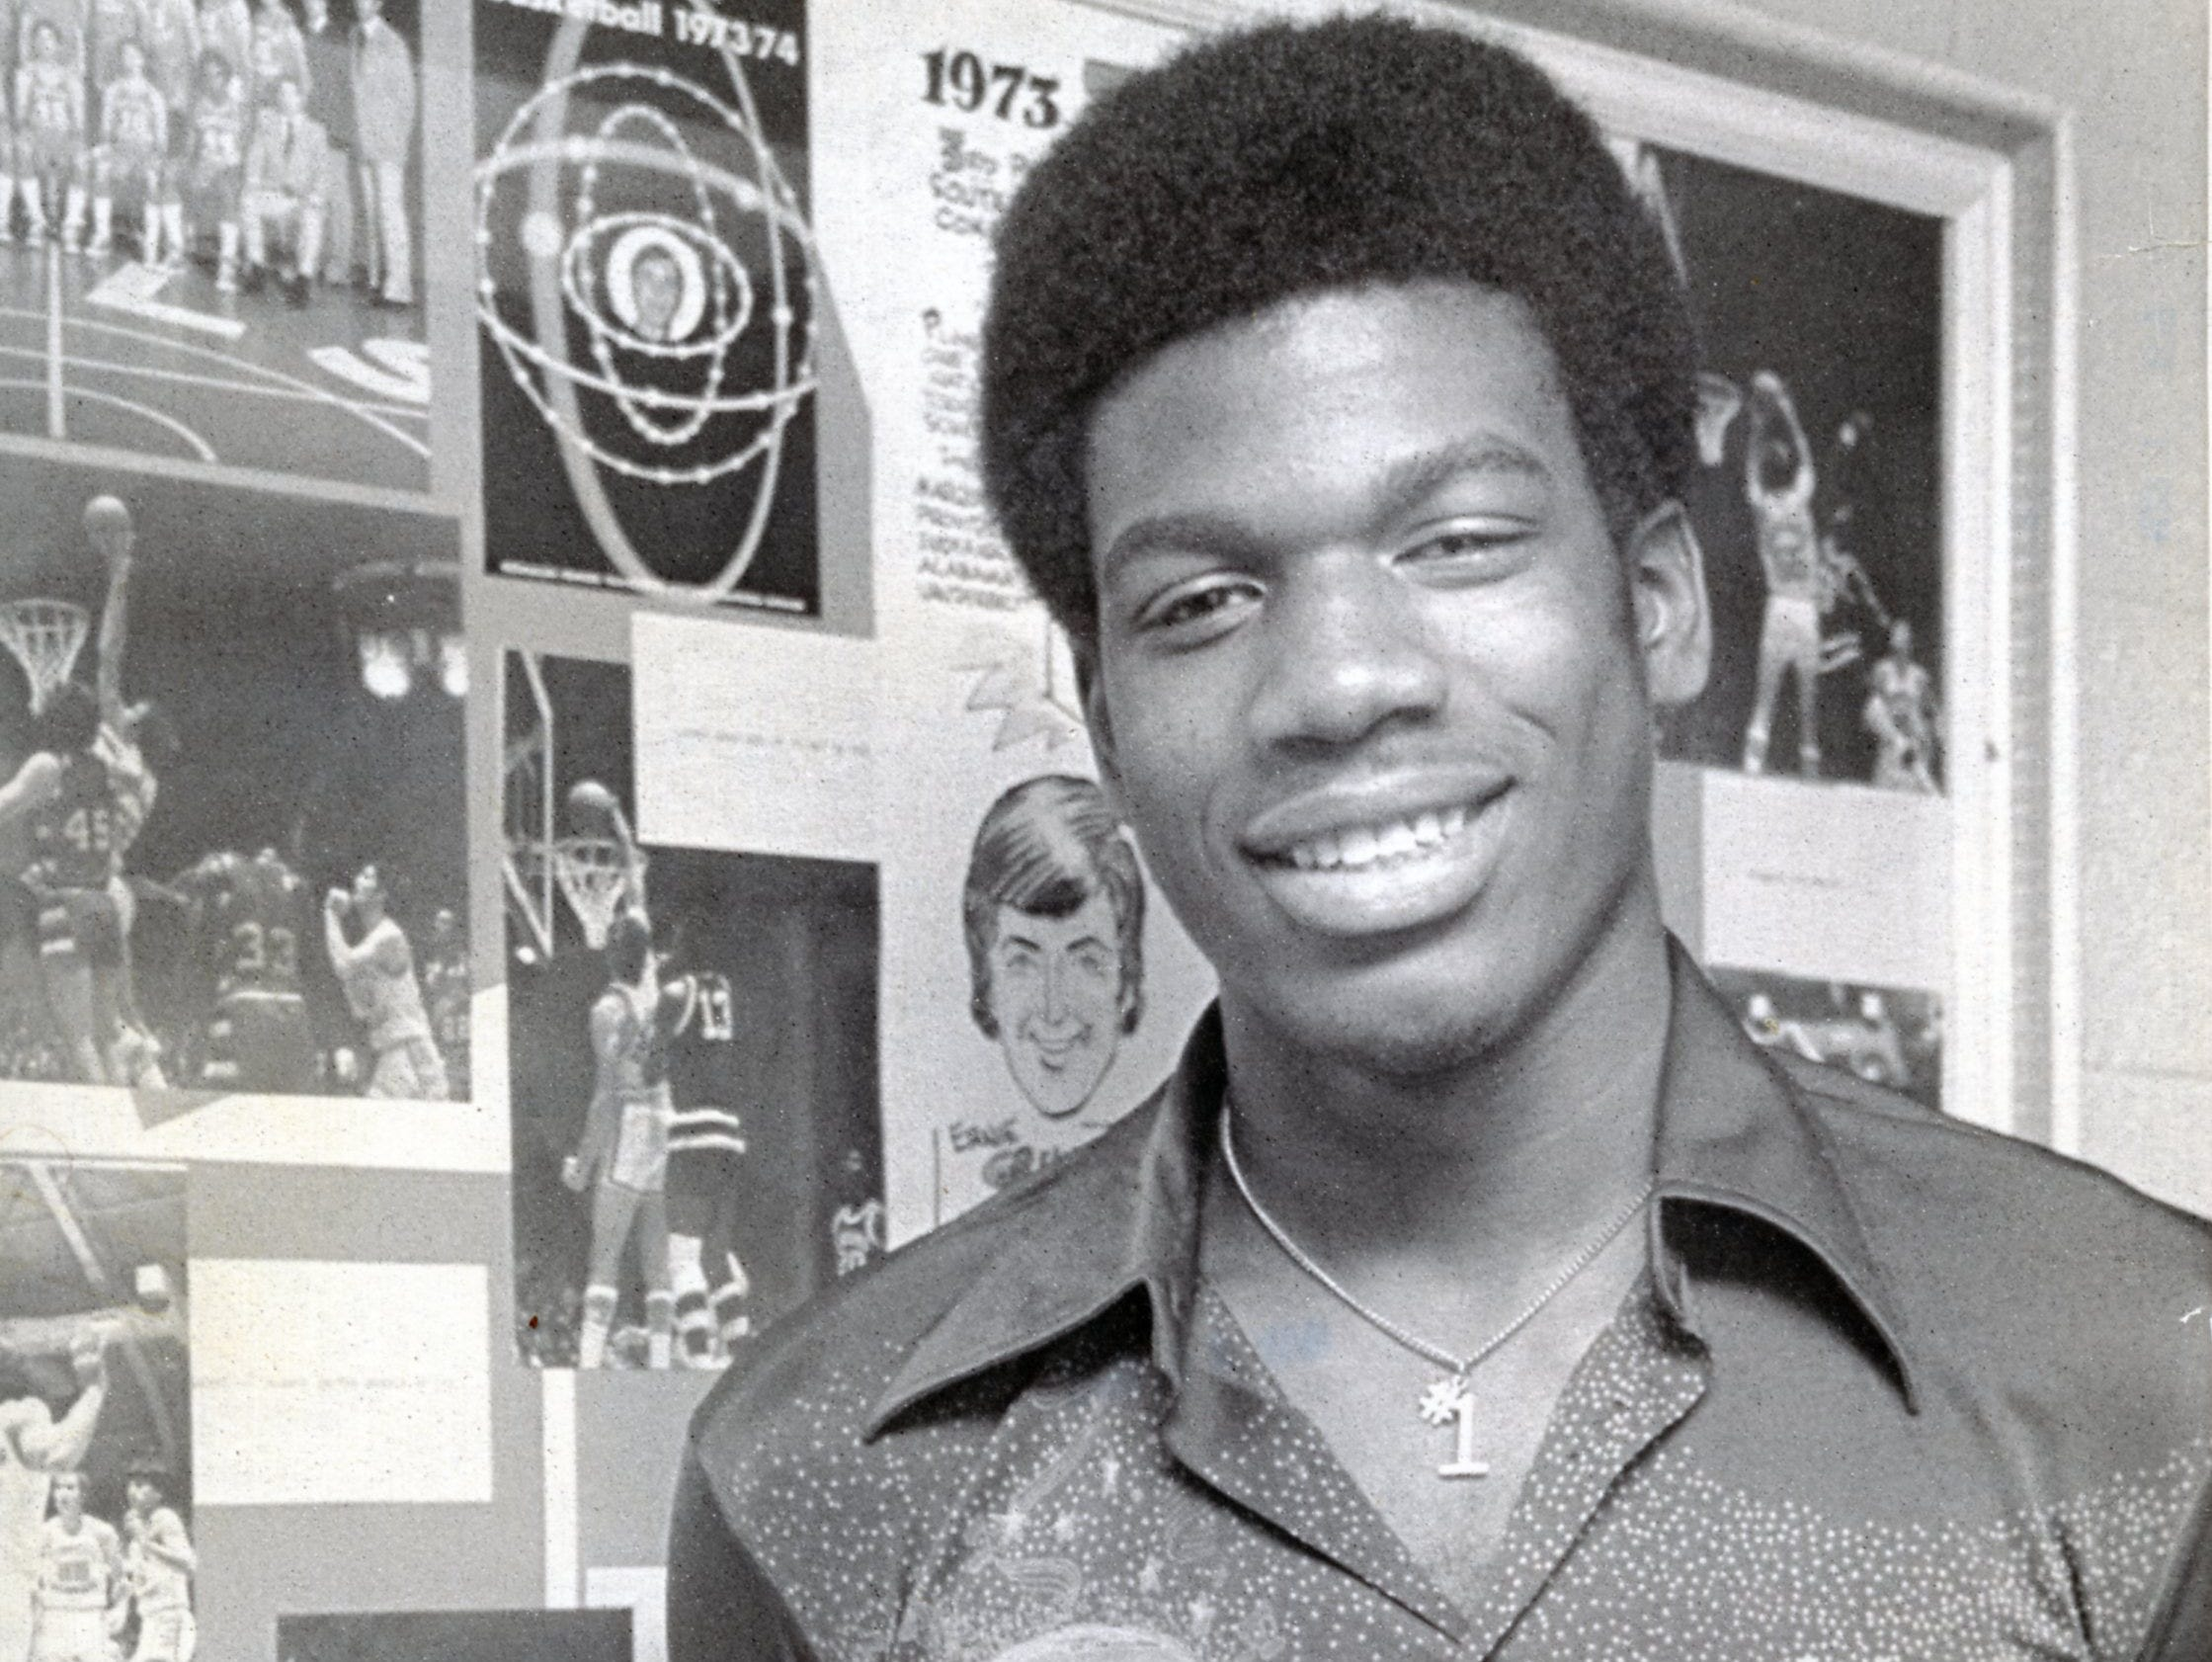 Bernard King was named United Press International's SEC Player of the Year two years in a row. He is pictured in a February, 1976 photo.